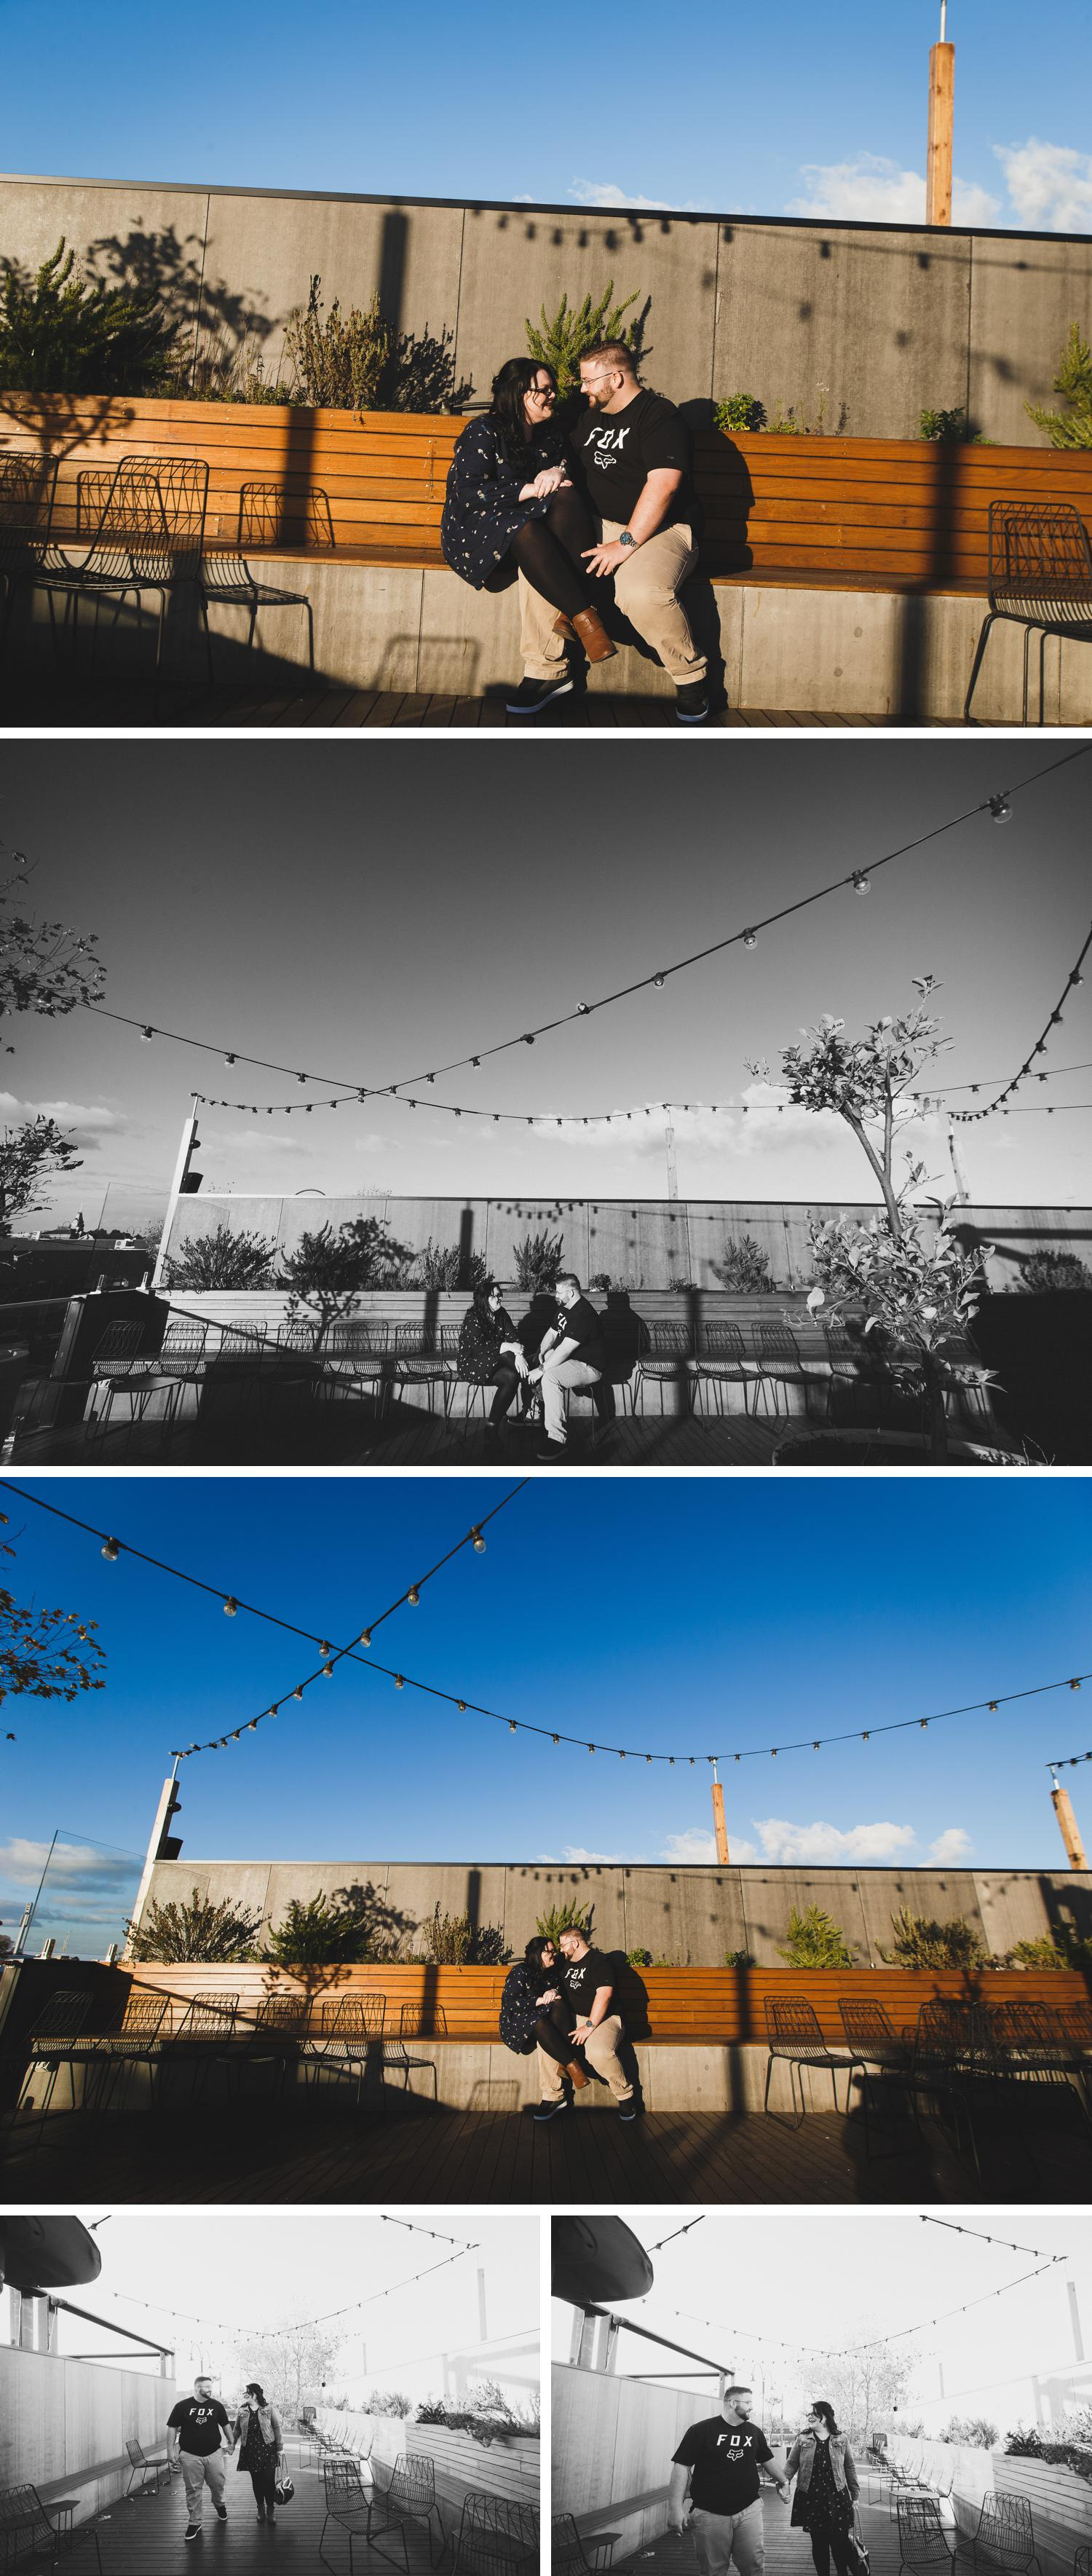 Junkyard Engagement Shoot, Rooftop Bar Momos Traralgon, Engagement Shoot by Danae Studios